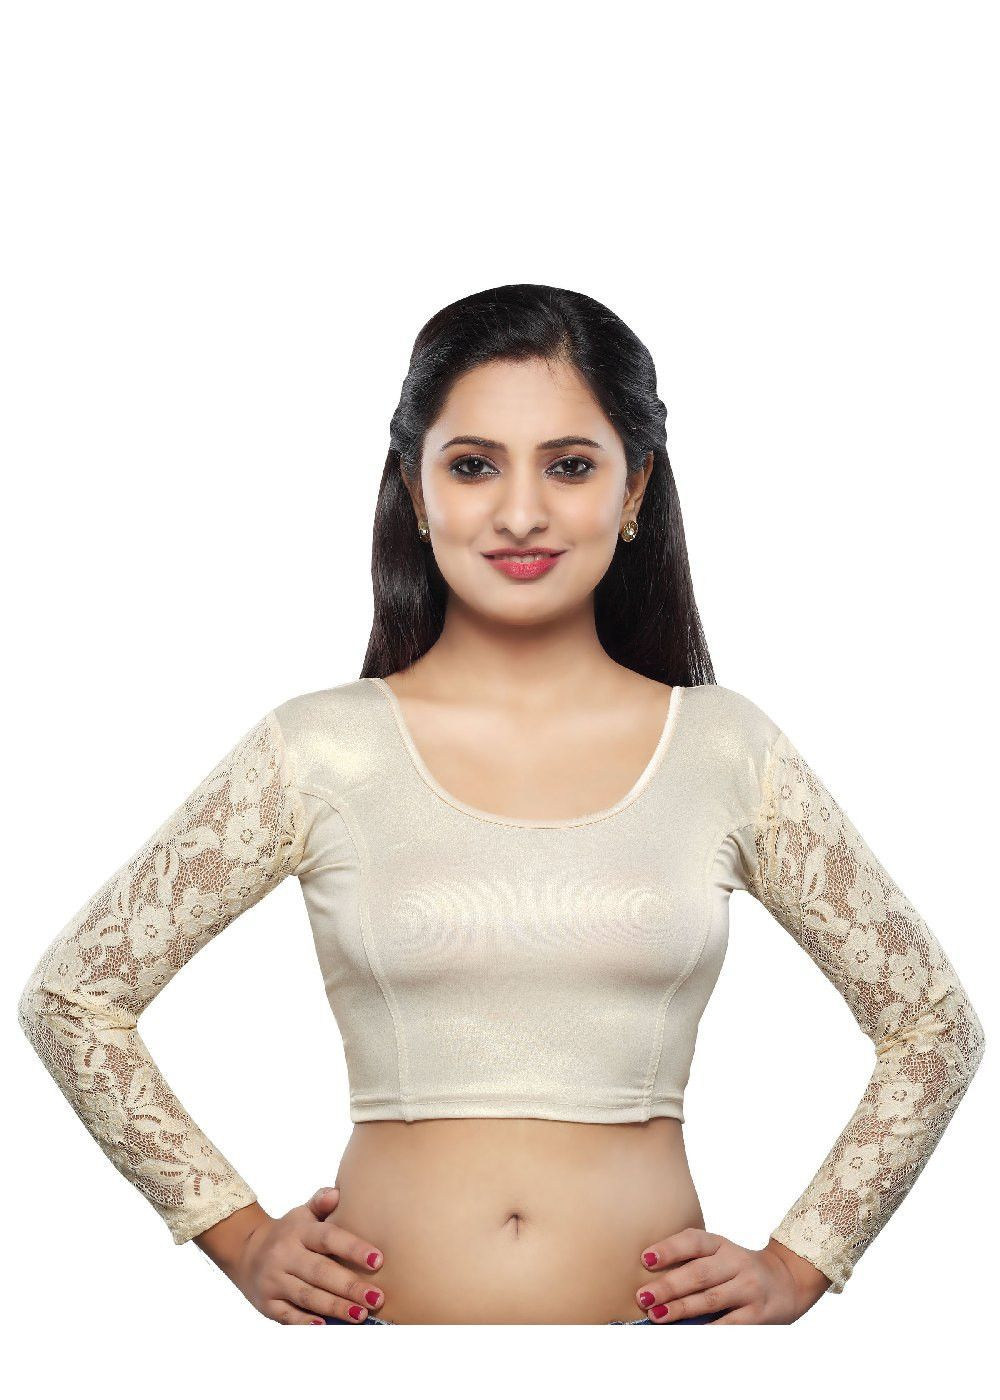 Saree blouse design sleeve offwhite shimmer stretchable saree blouse with long sleeves snta